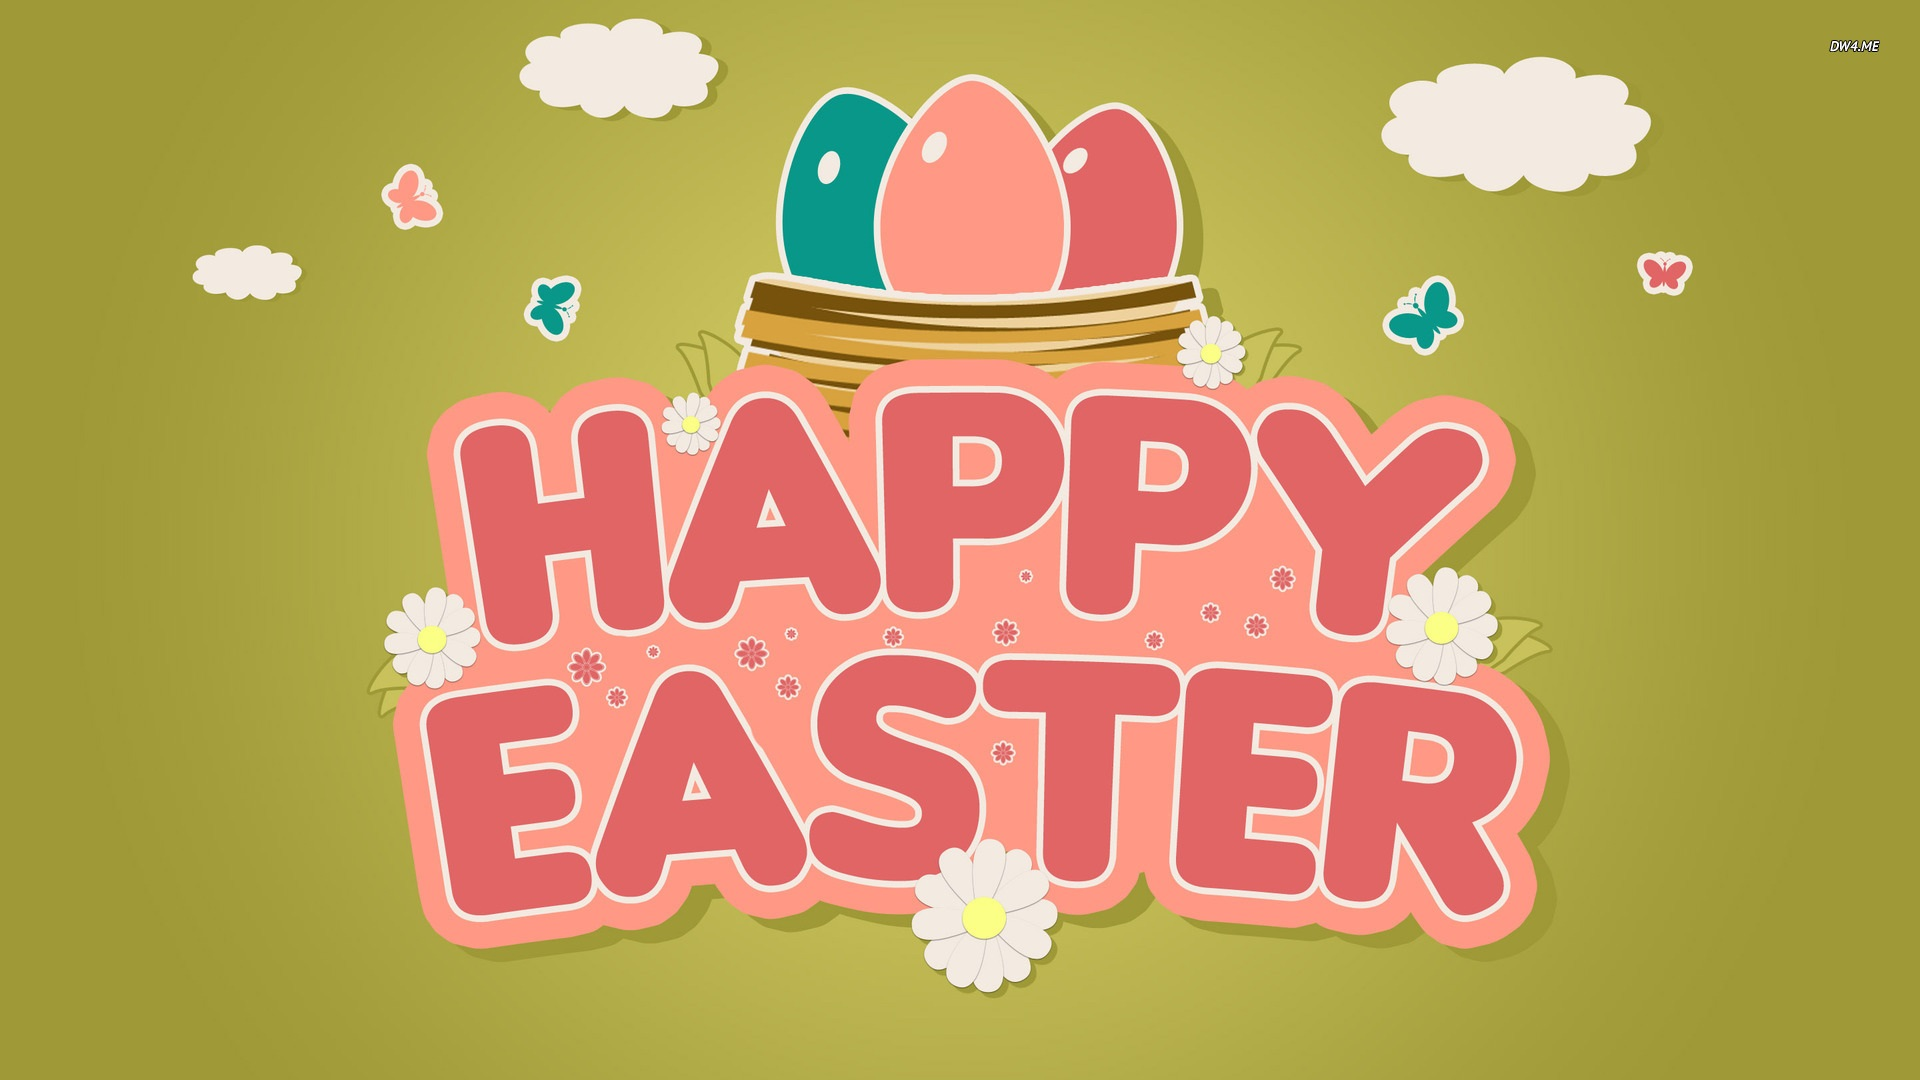 Happy easter wishes image free download